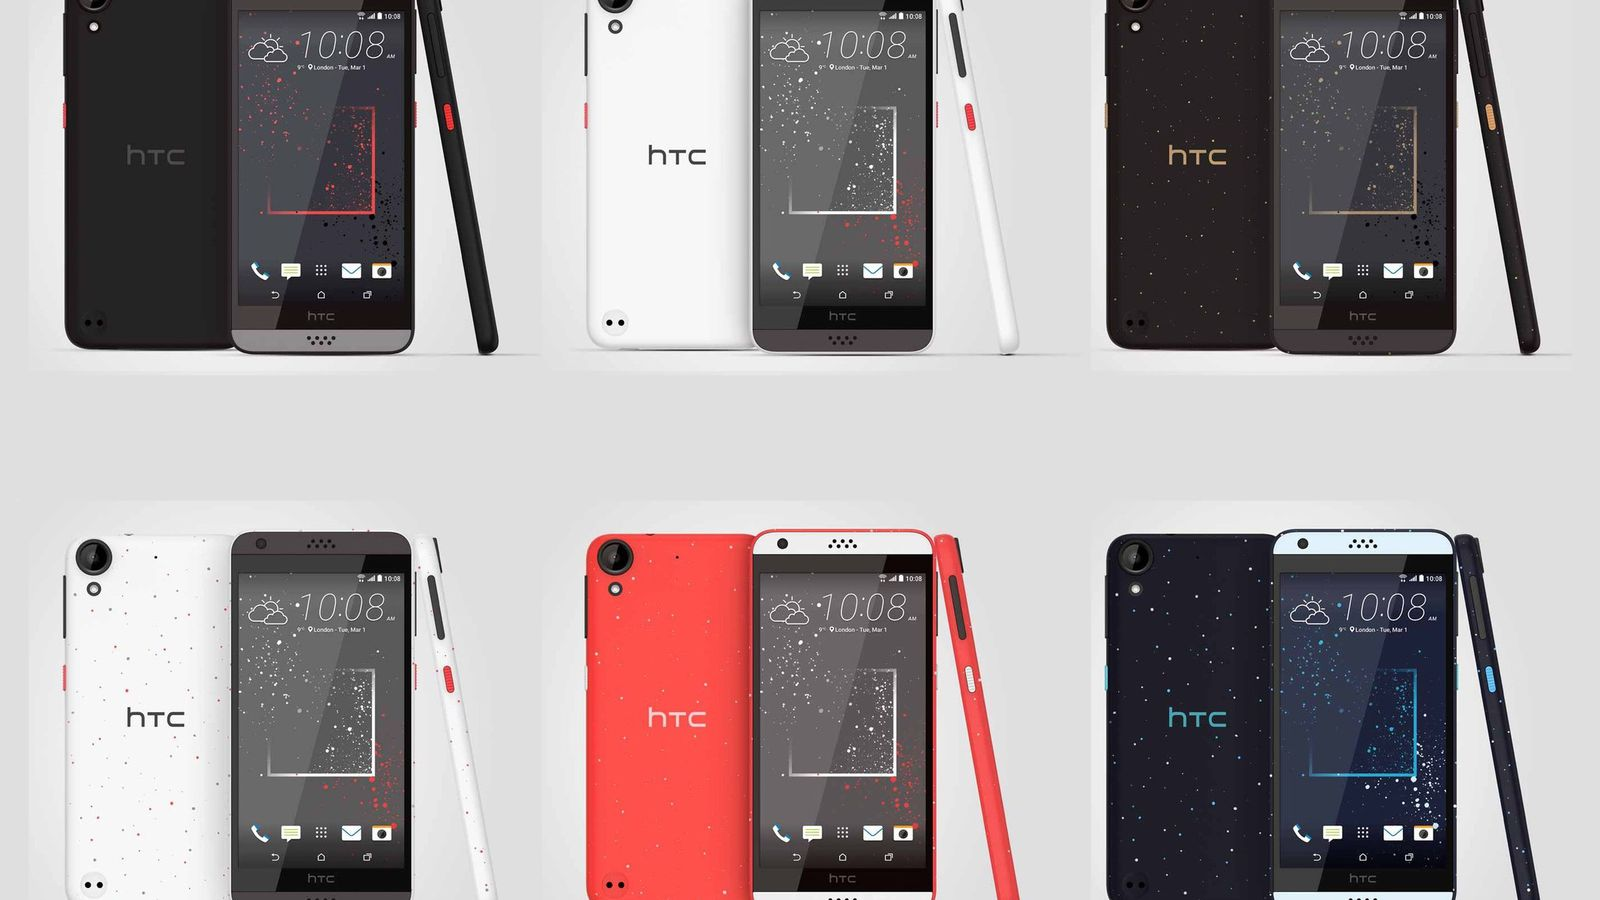 Leaked HTC A16 images could show the company's next mid ...